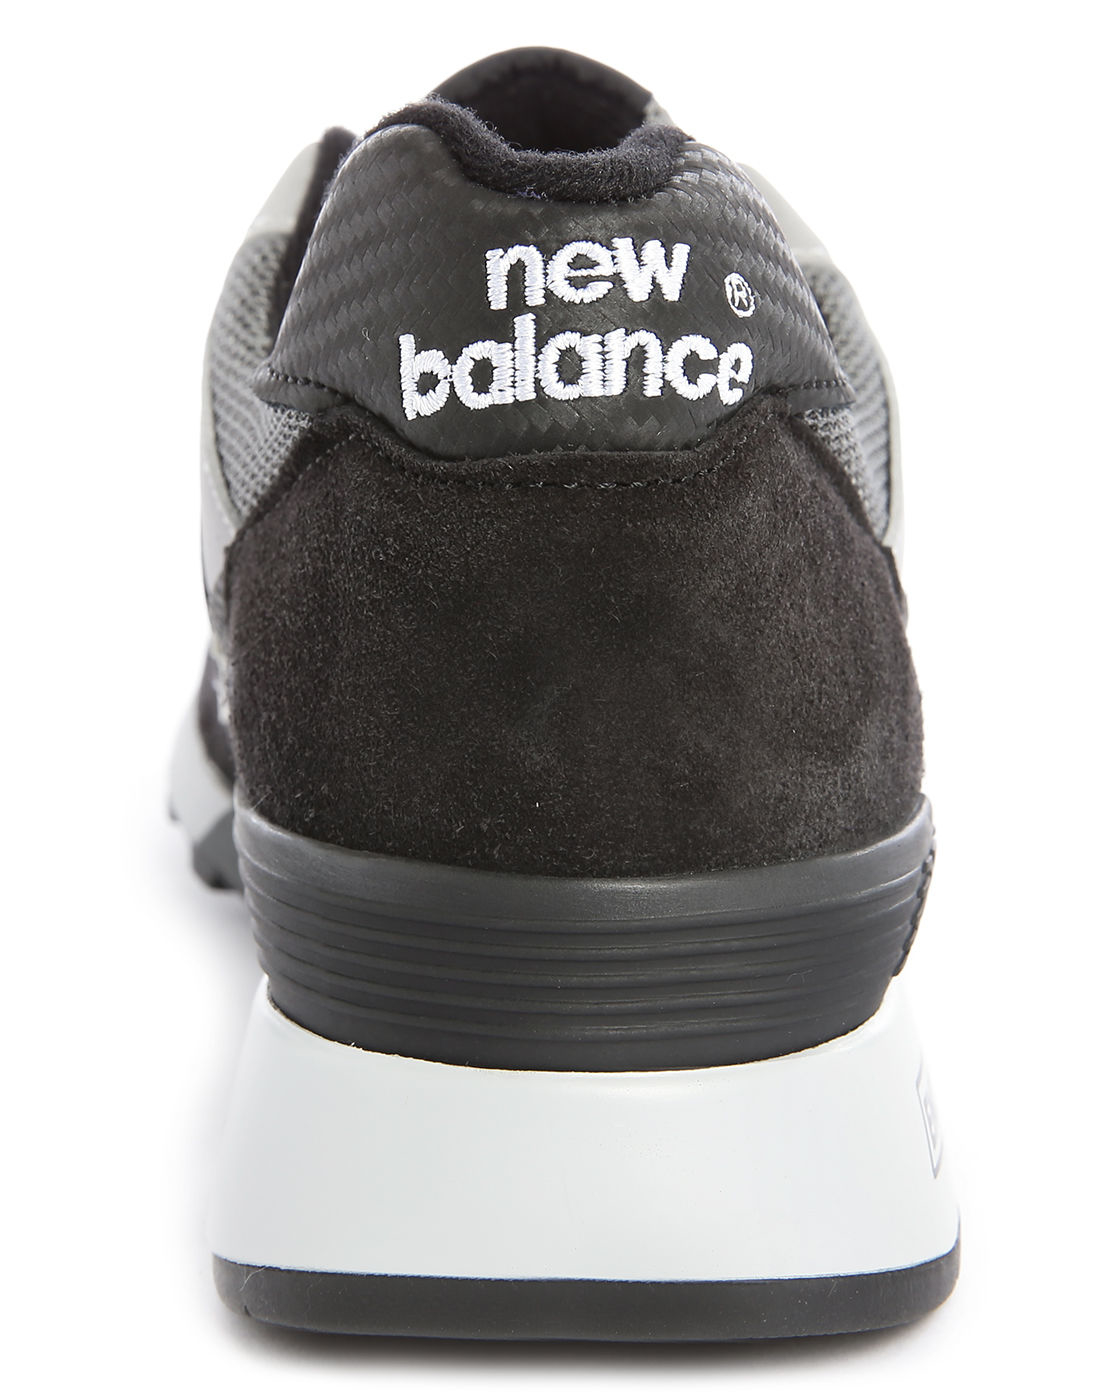 new balance 577 suede handbags